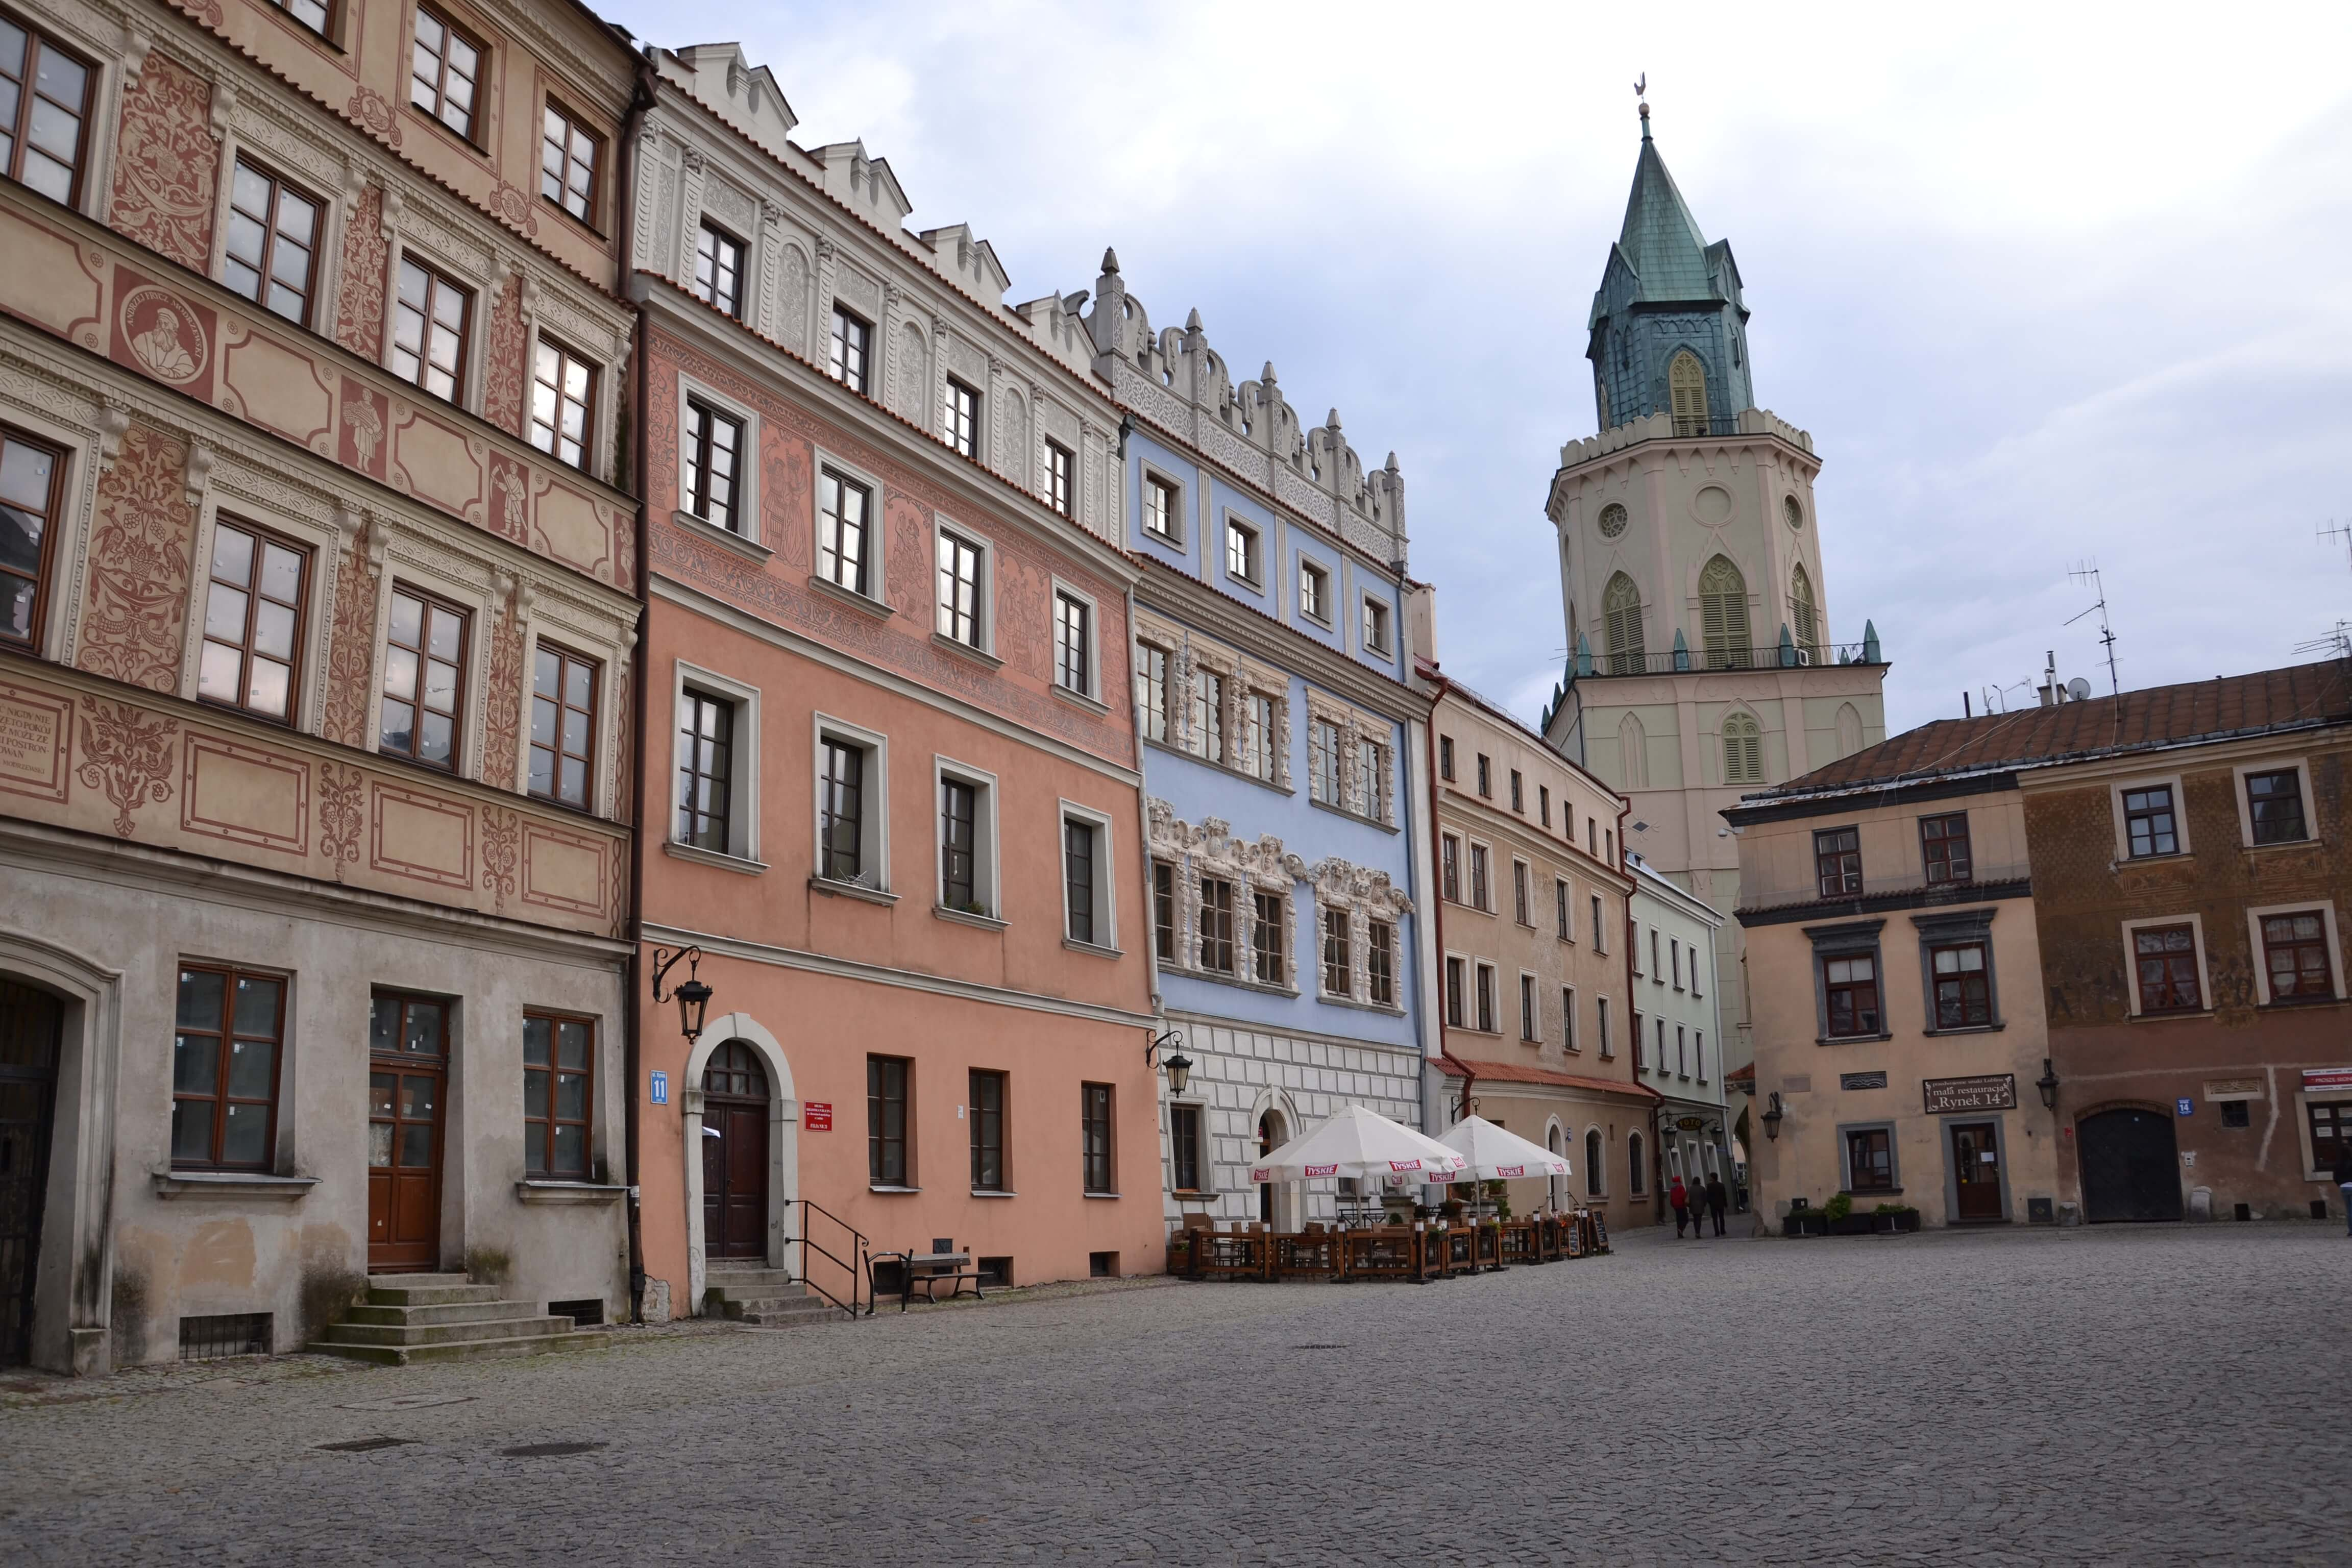 town square with old buildings and a spire